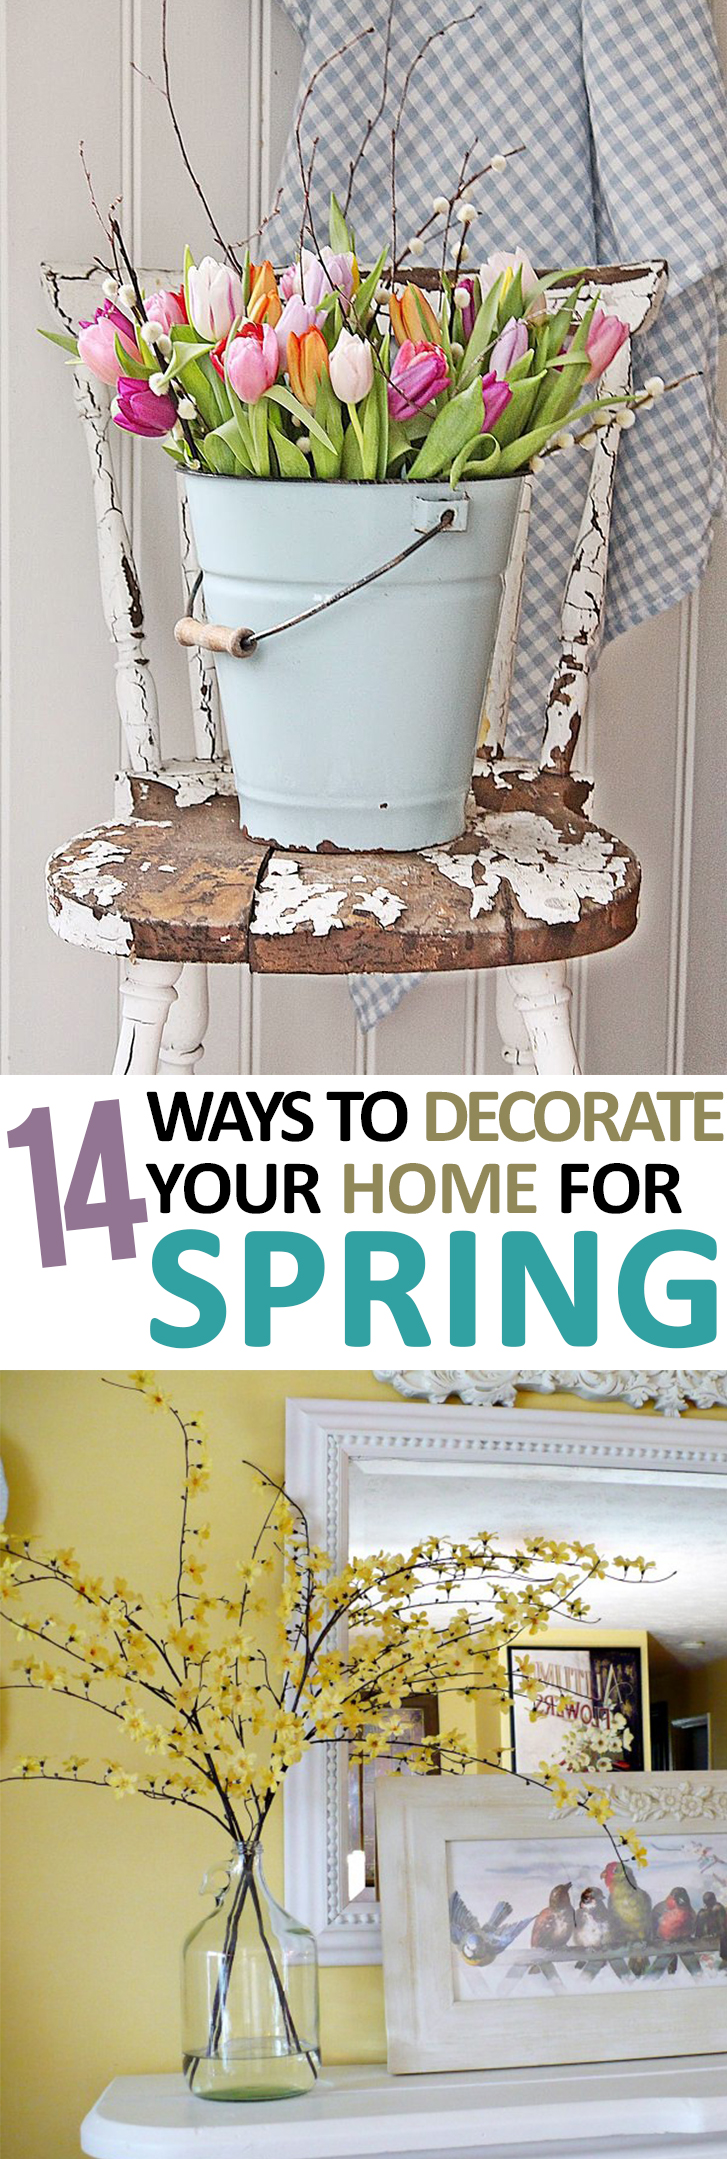 Spring Decor, Spring Home Decor, Home Decor for Spring, How to Decorate Your House for Spring, Spring Holiday, Spring Tips and Tricks, Popular Pin, Spring Home Decor, DIY Spring Decor.